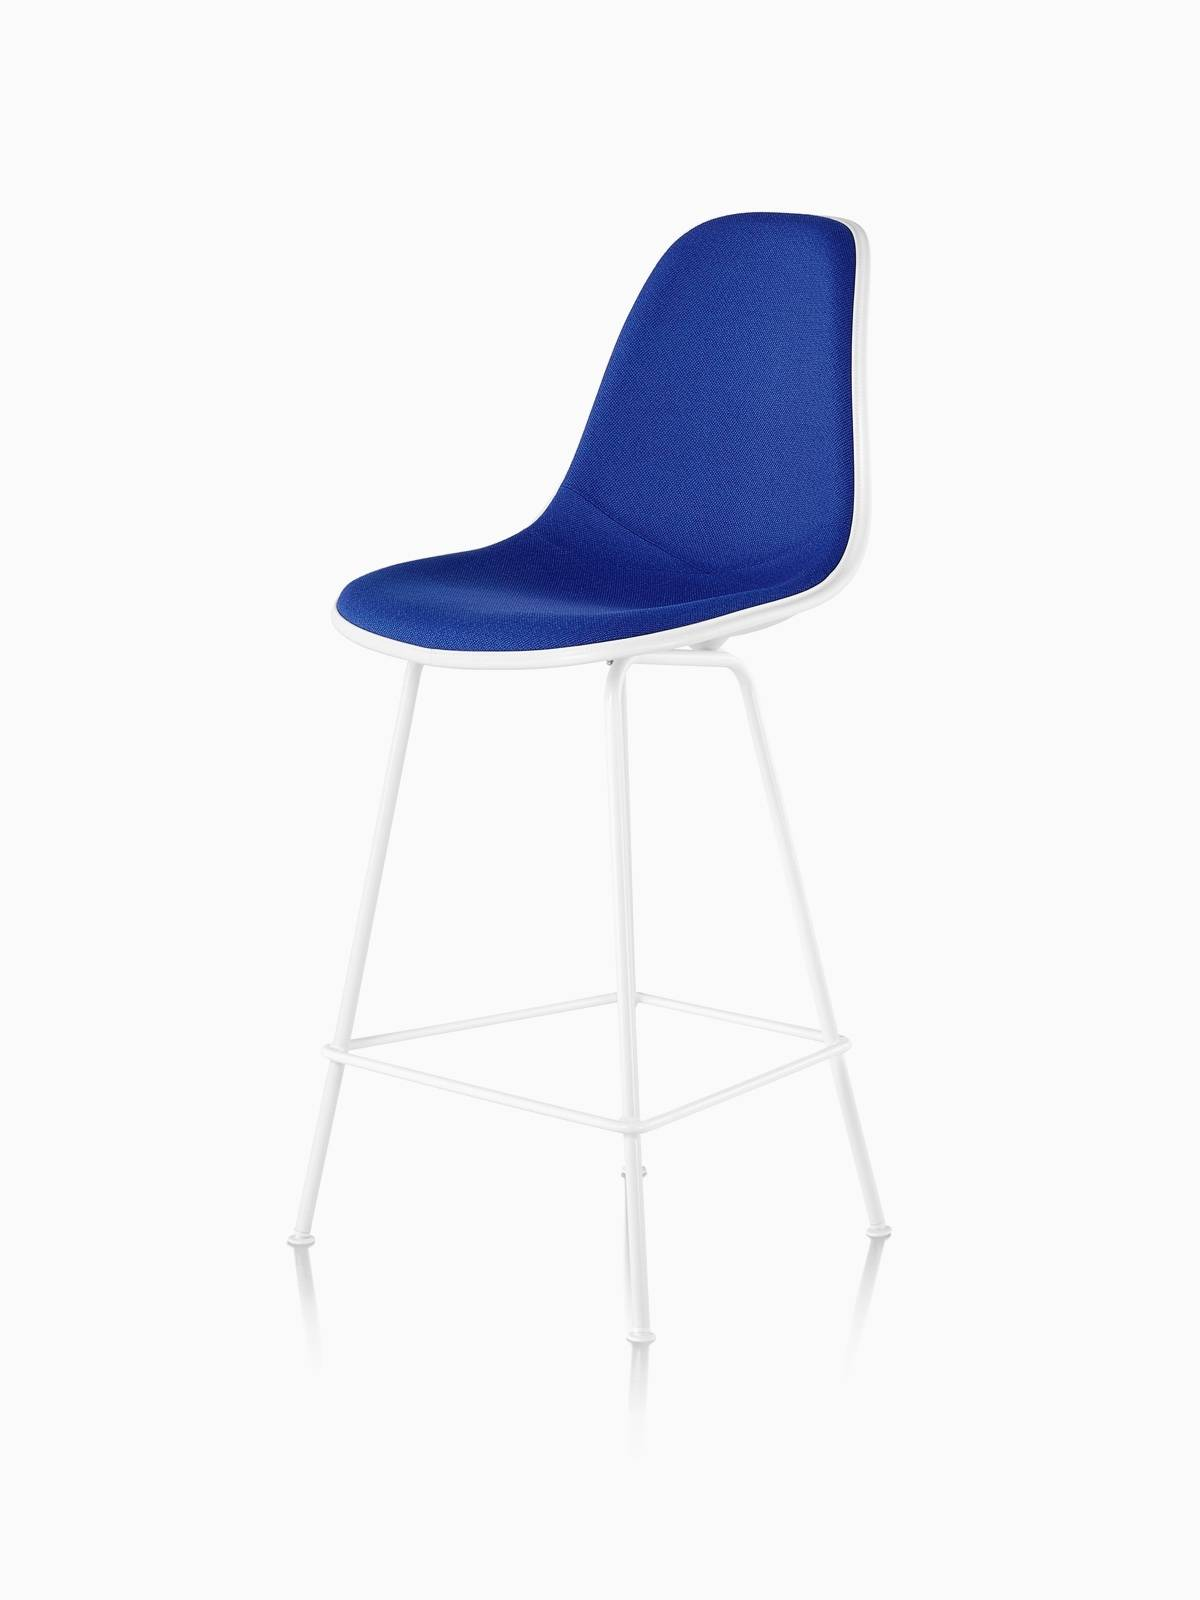 Blue Eames Molded Plastic Stool with White Legs